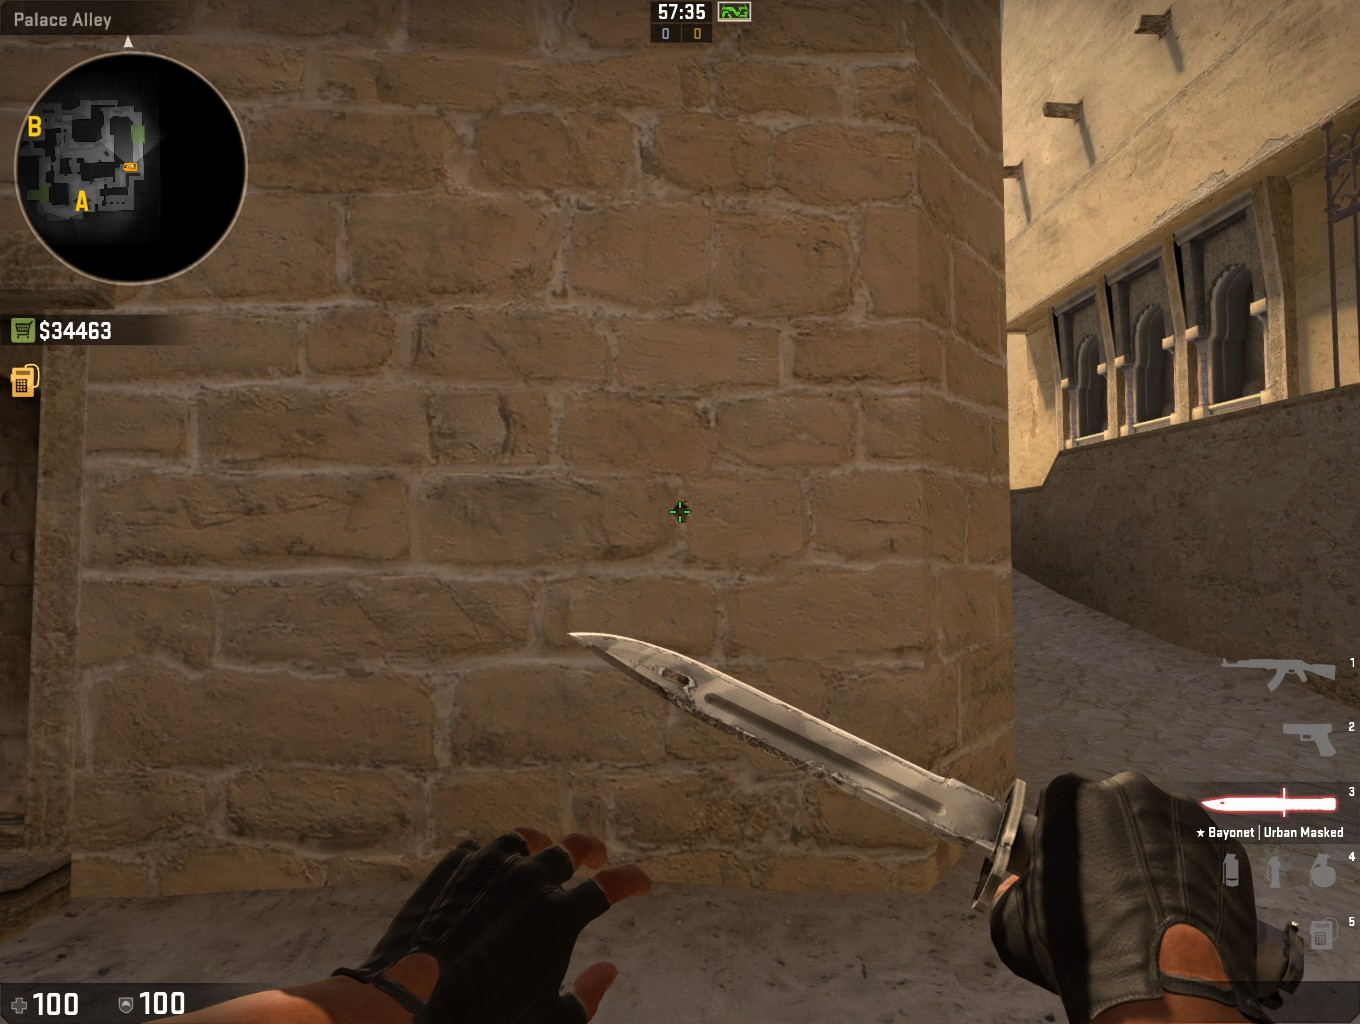 Csgo how to make hold to aim